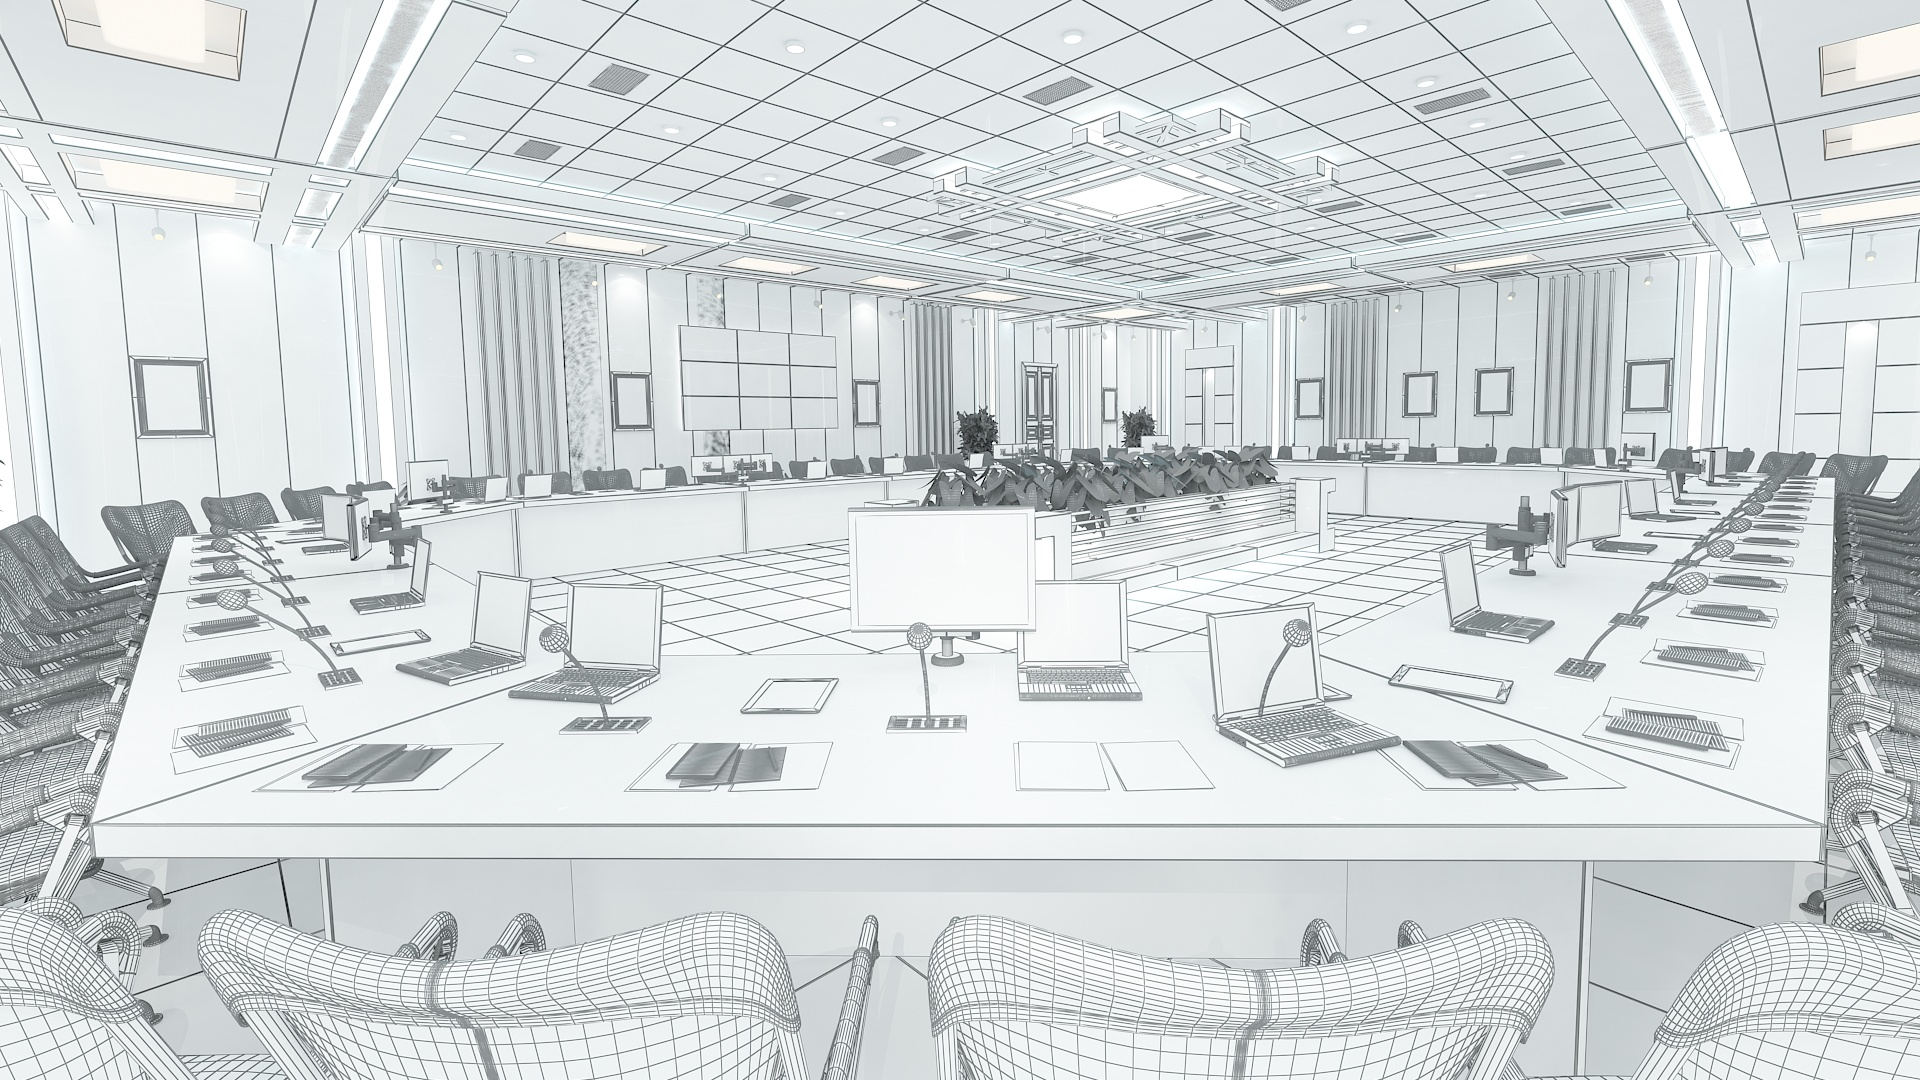 meeting room 1 3d model 3ds max dxf dwg 288111